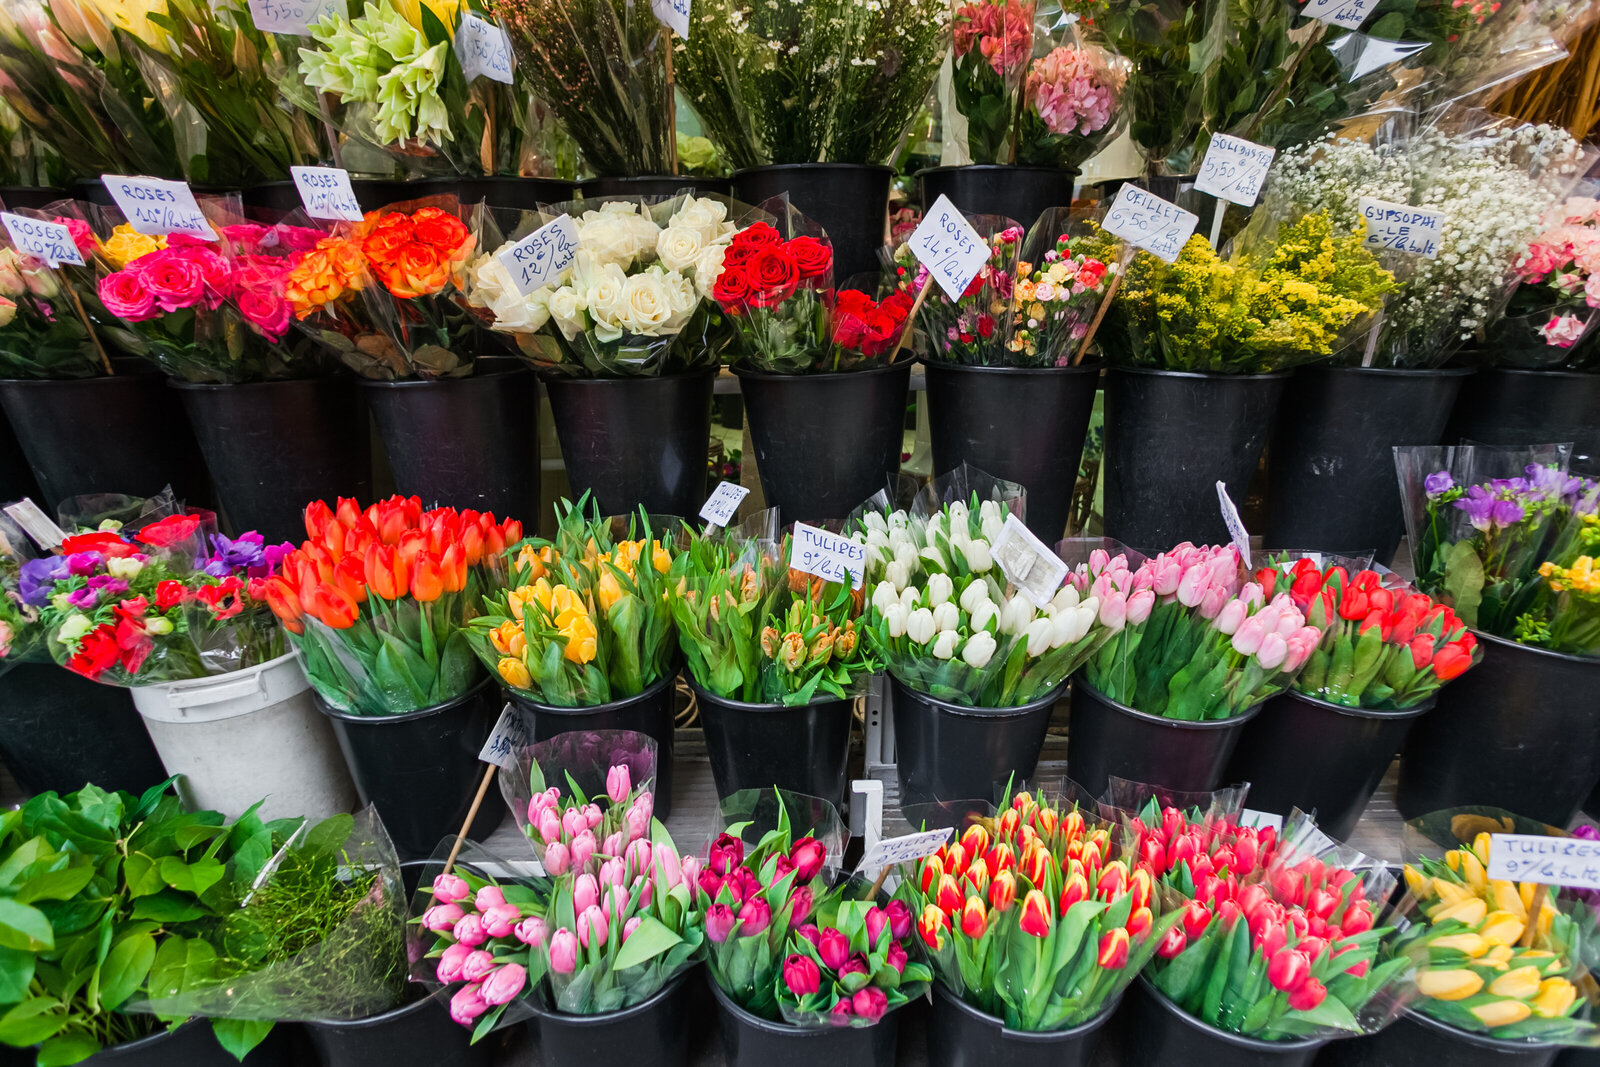 062-KBP-fresh-flowers-Paris-France